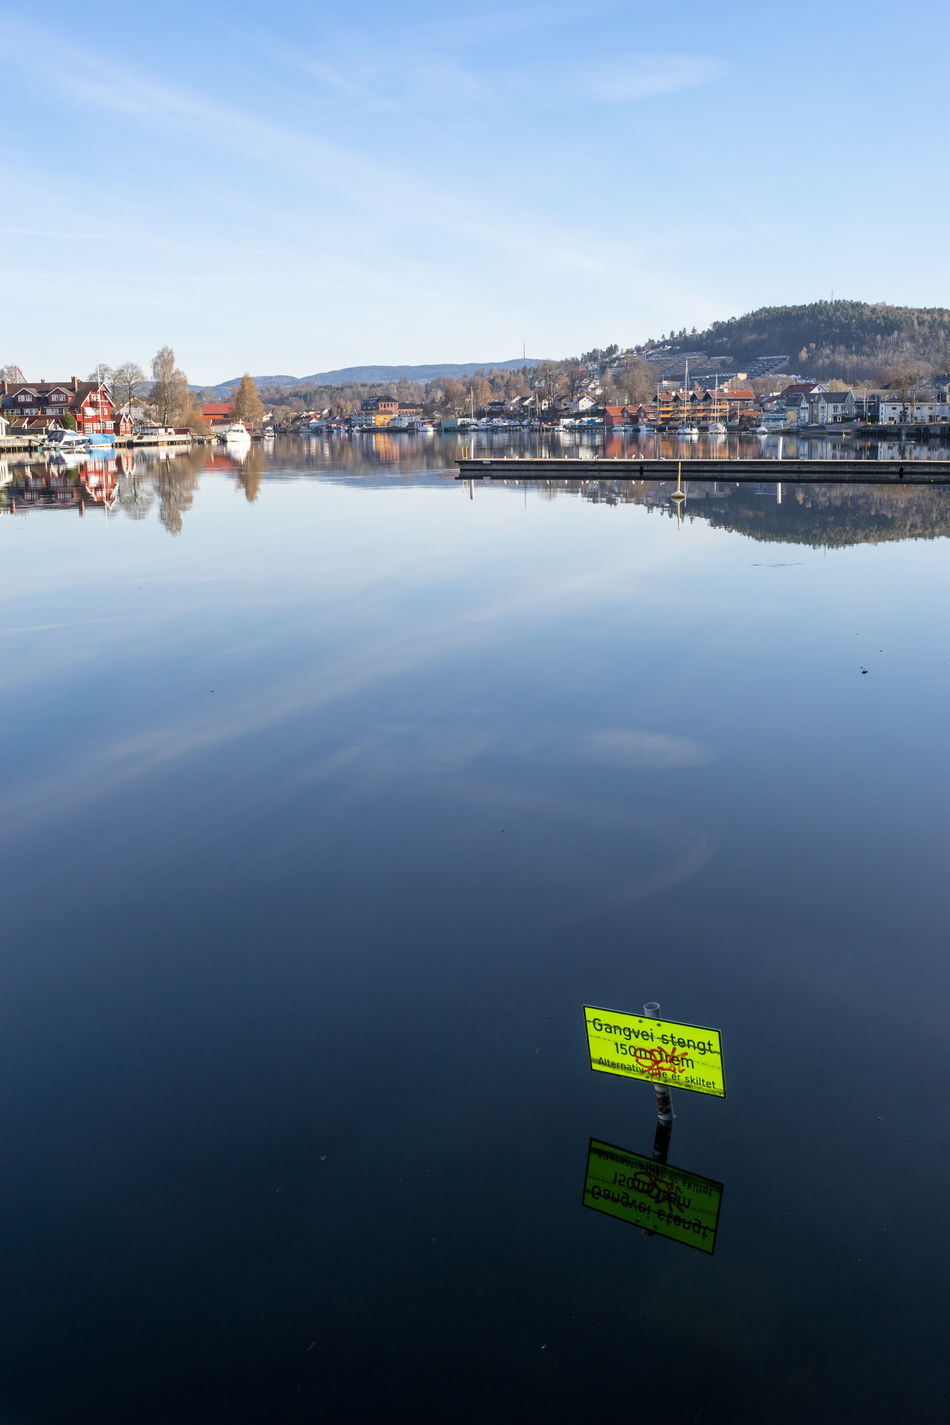 Walkway is closed. No idea why =) Architecture Blue Building Exterior Built Structure City Cityscape Day Nature No People Norway Norway🇳🇴 Outdoors Porsgrunn Reflection River Sky Sony A7 Text Town Vintage Lens Water Waterfront